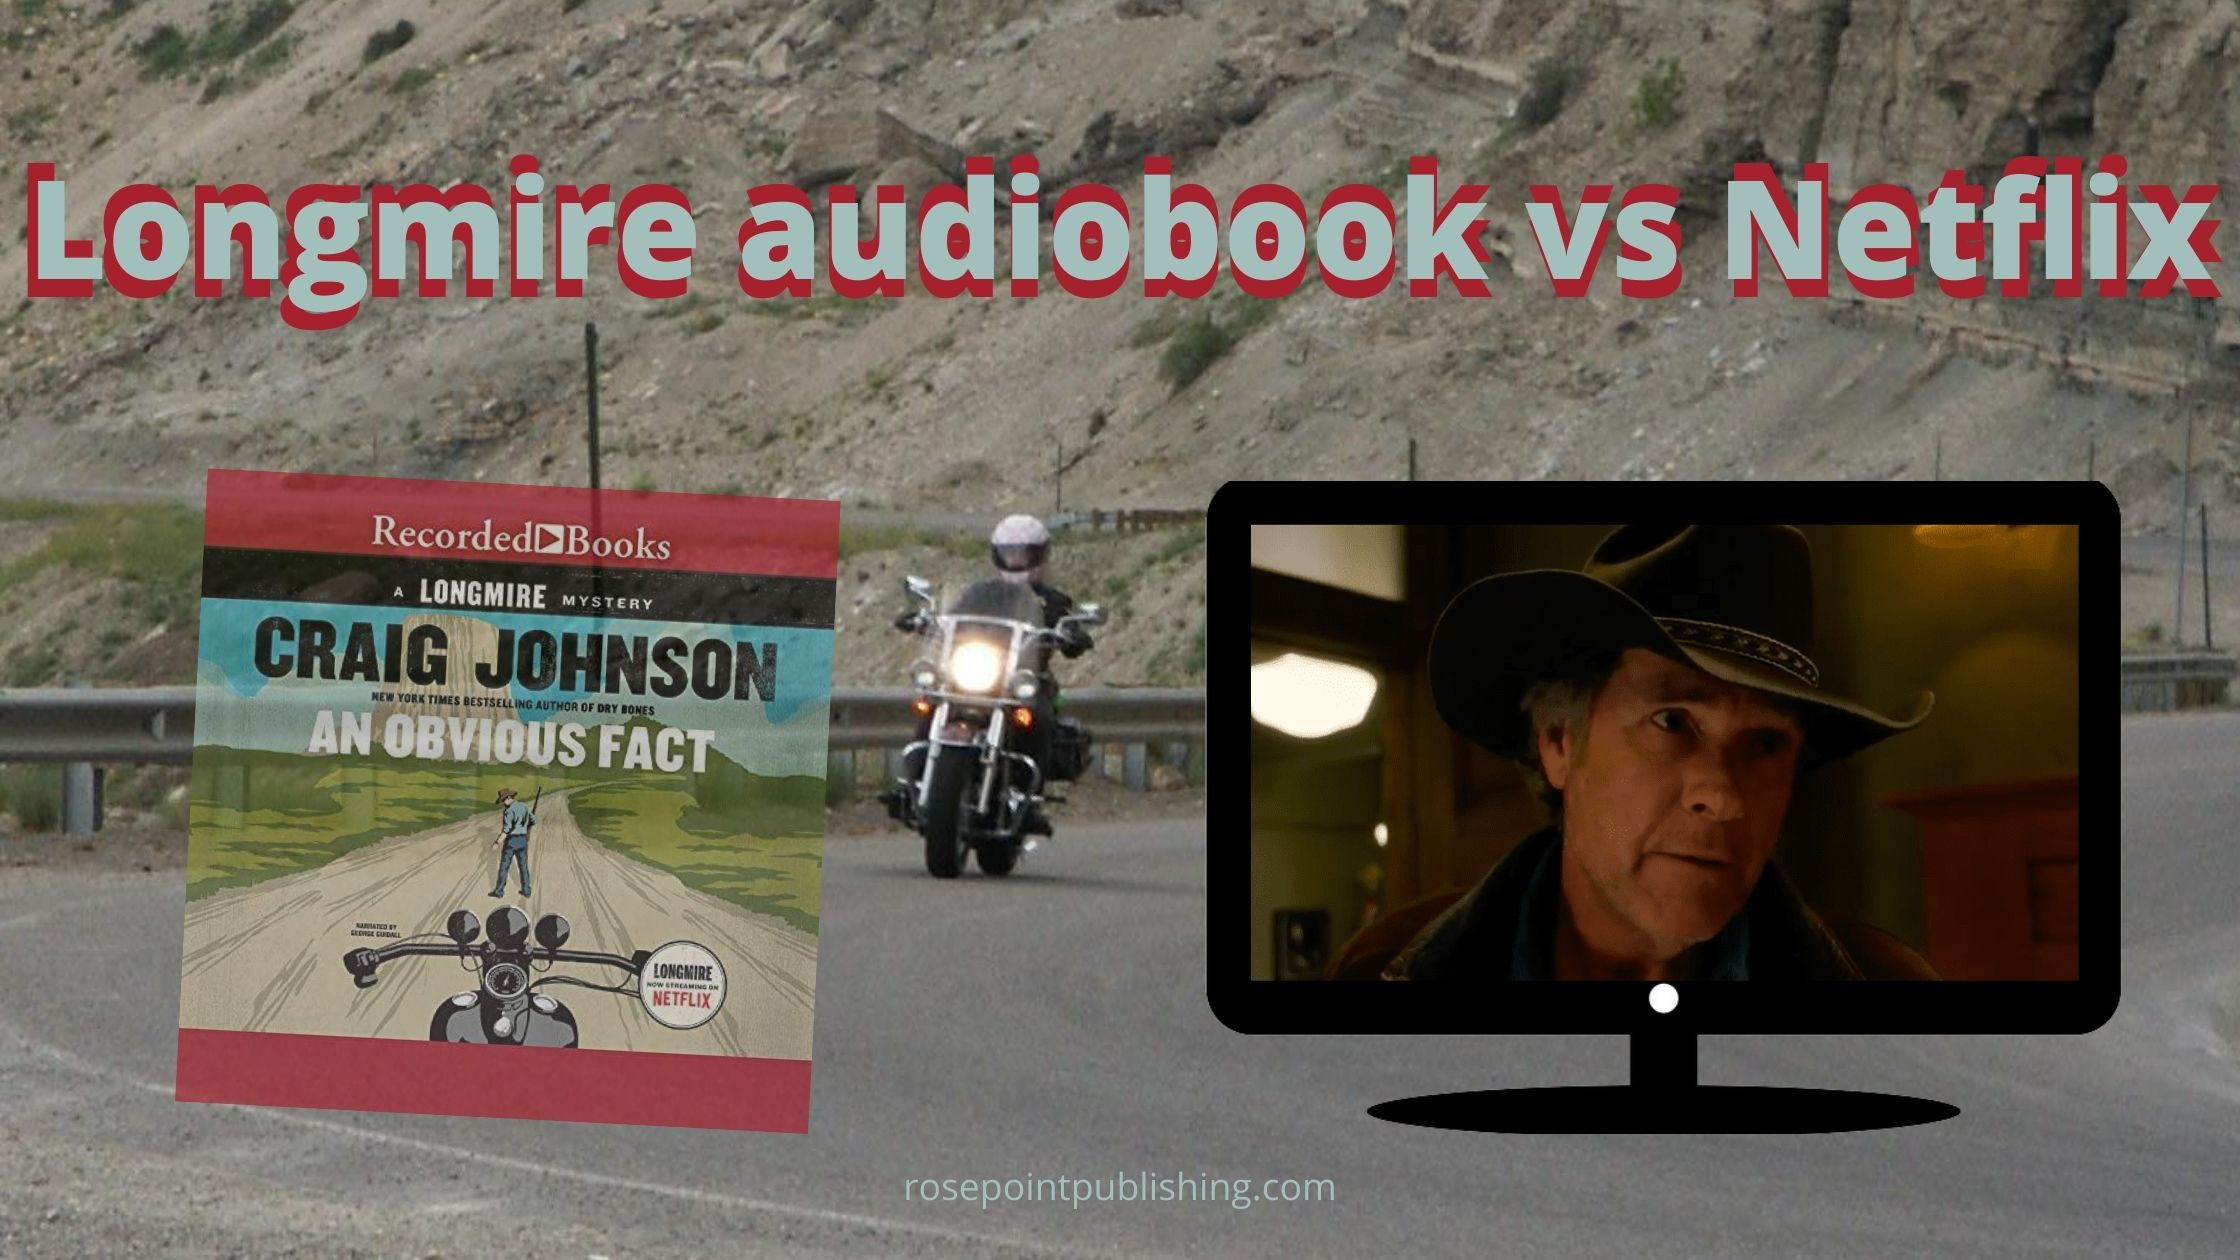 Longmire audiobook vs Netflix blog banner